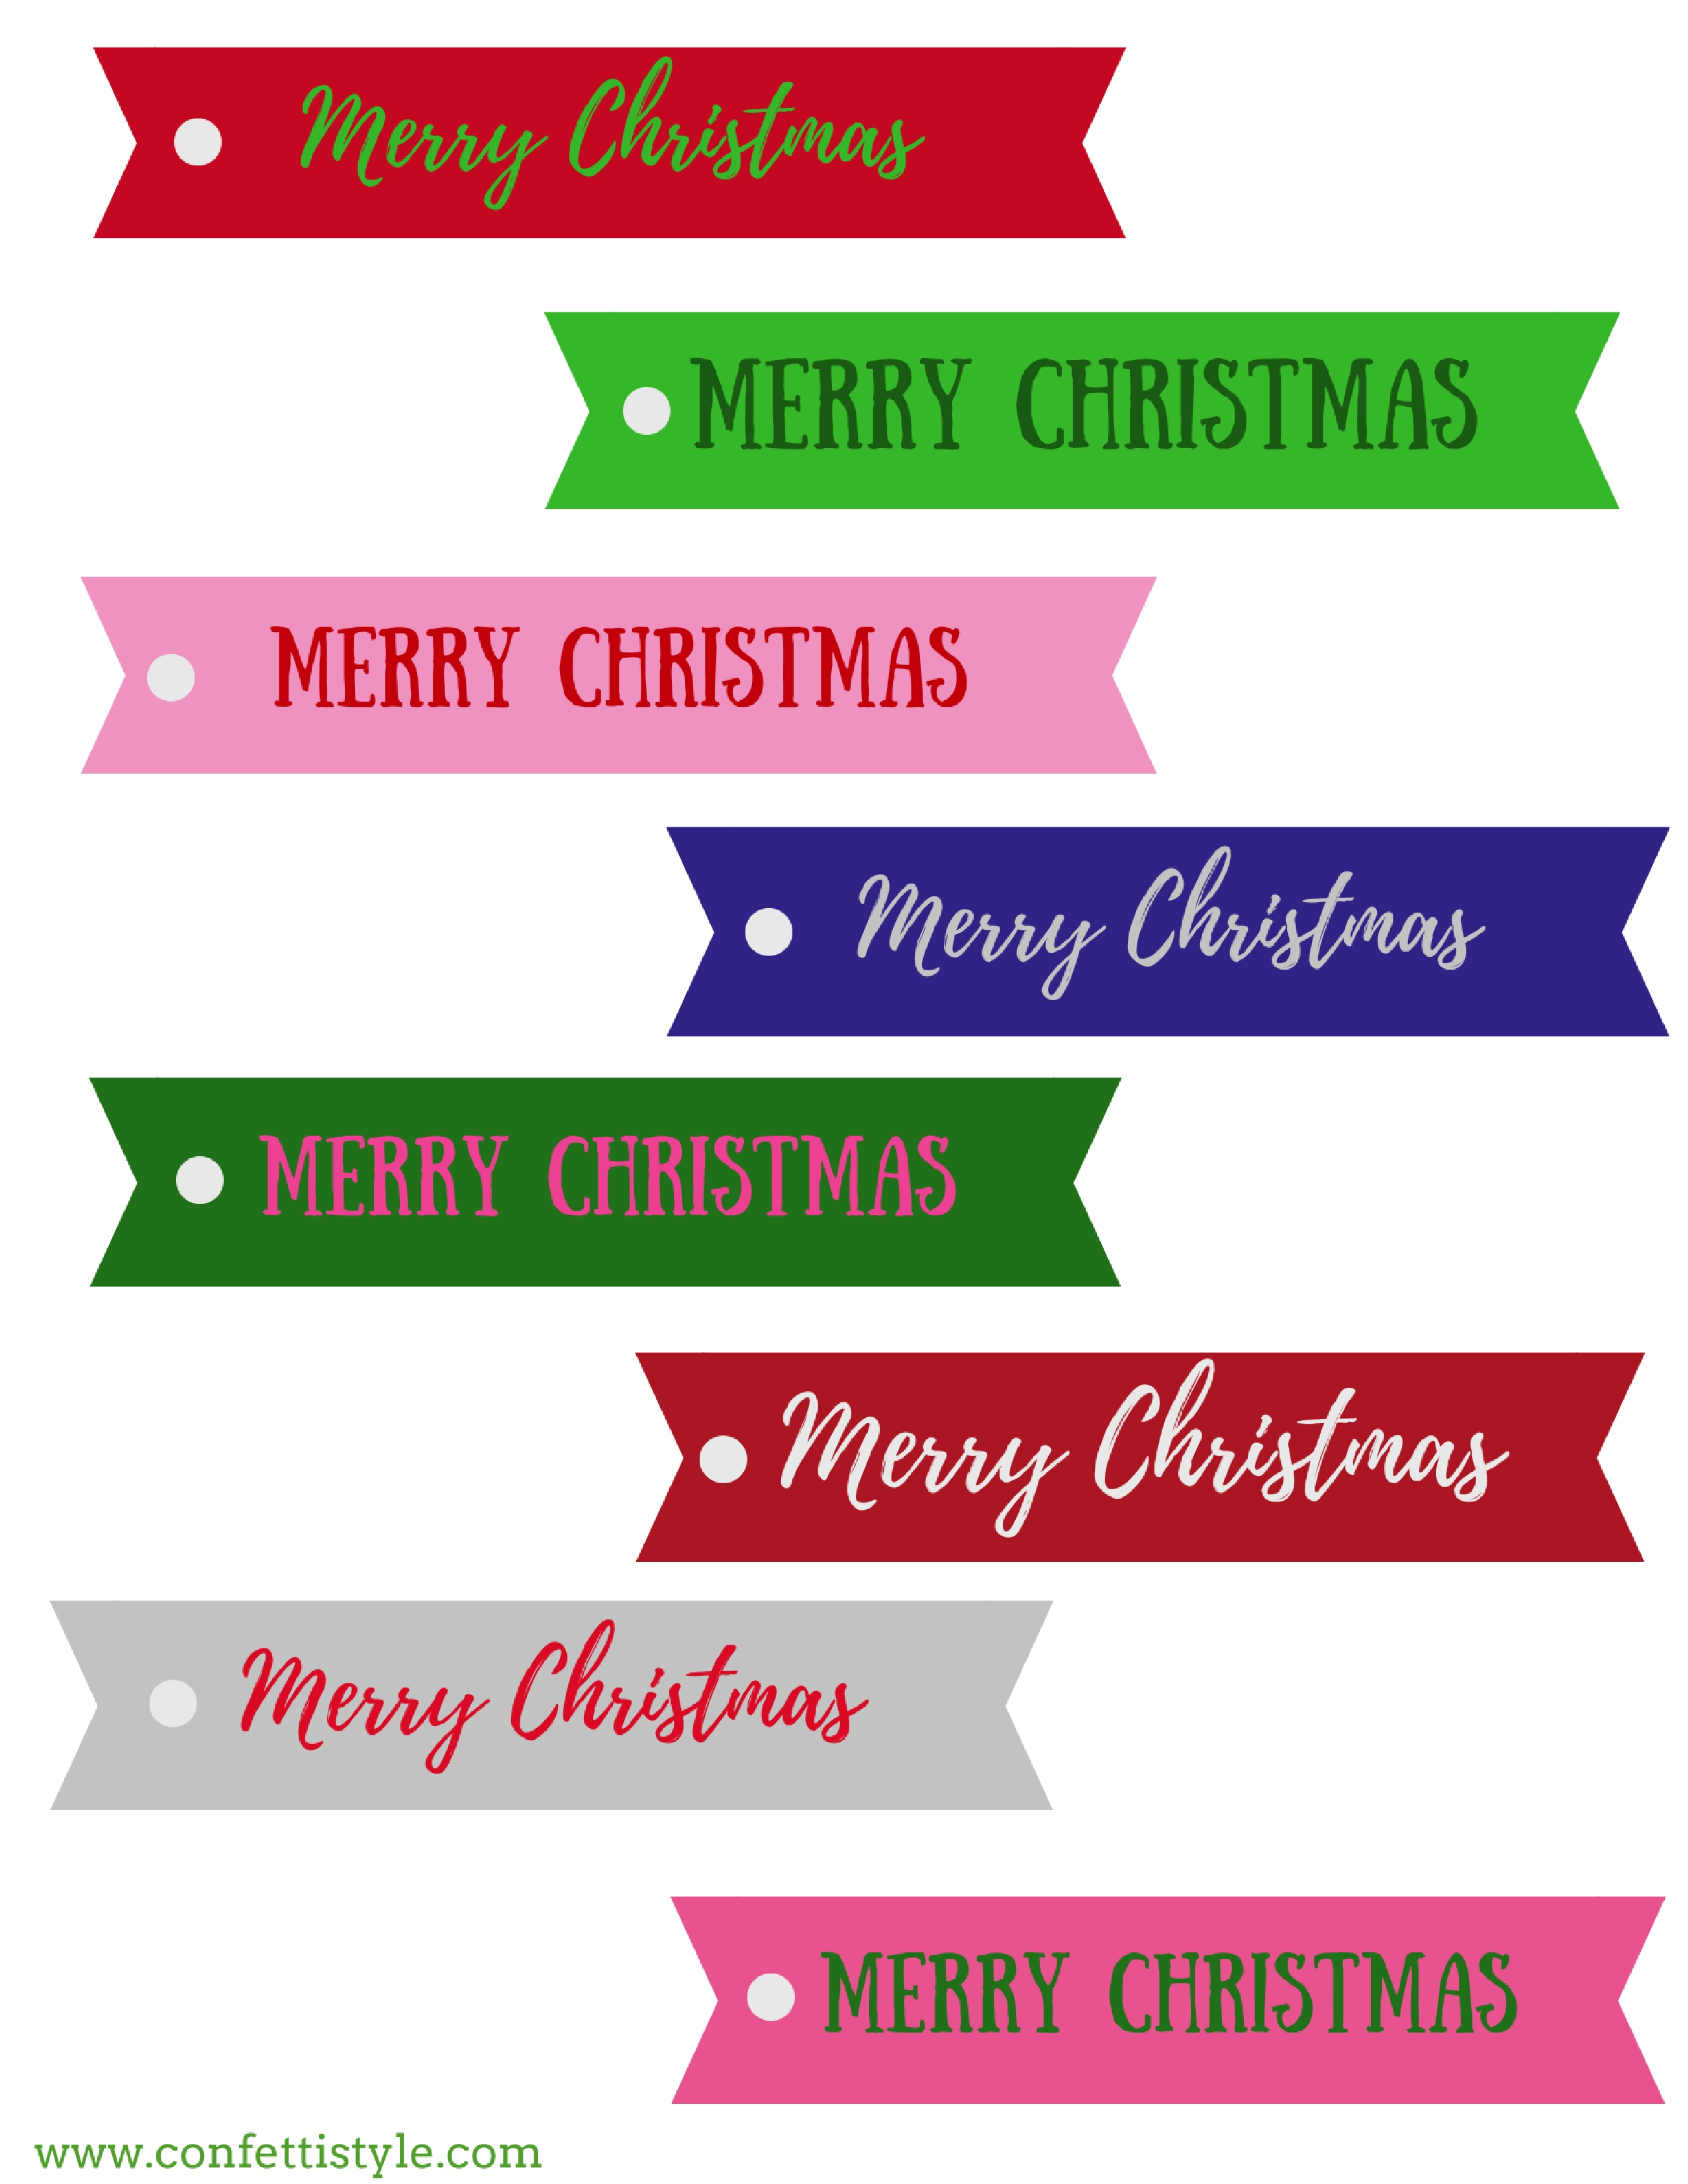 image about Merry Christmas Tags Free Printable known as Totally free Printable Merry Dazzling Reward Tags ConfettiStyle